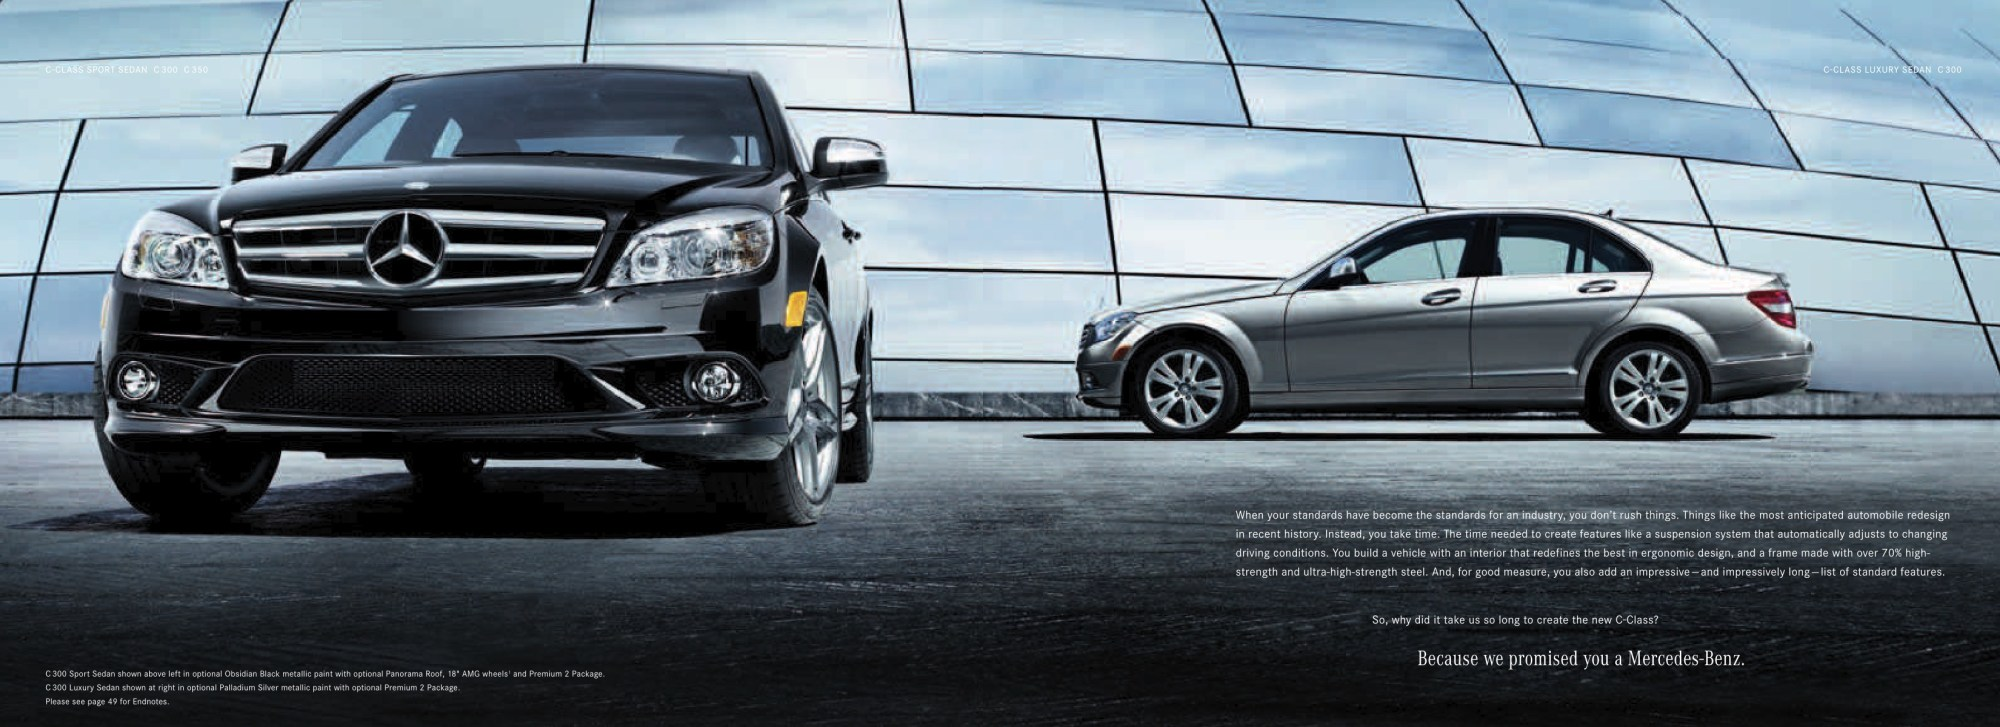 hight resolution of 2008 mercedes benz c class brochure page 2